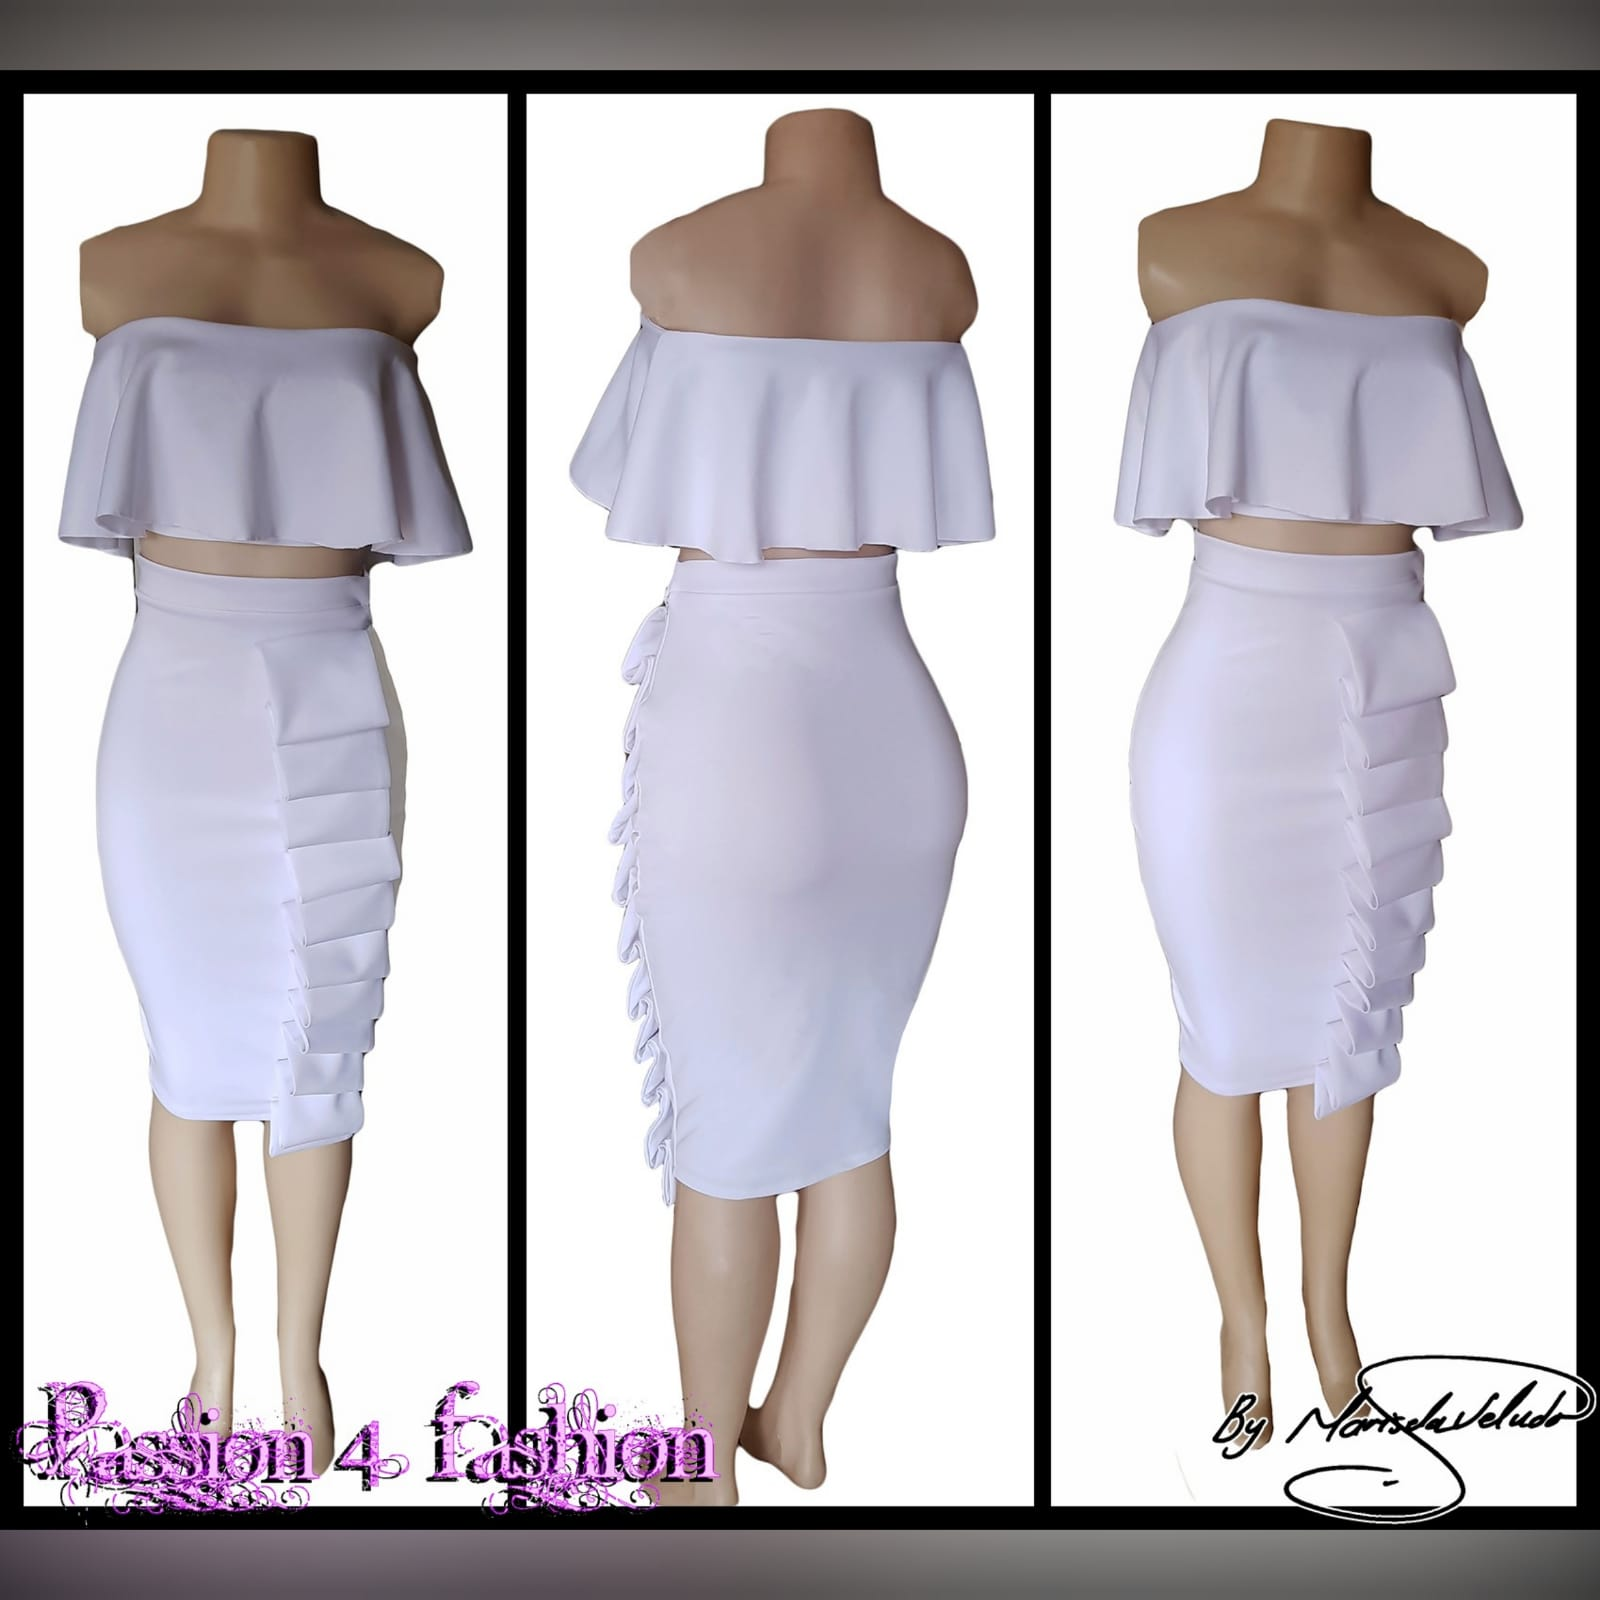 2 piece white smart casual wear 5 2 piece white smart casual wear. Crop boob tube frilled top with tight fitting below the knee skirt detailed with folds.